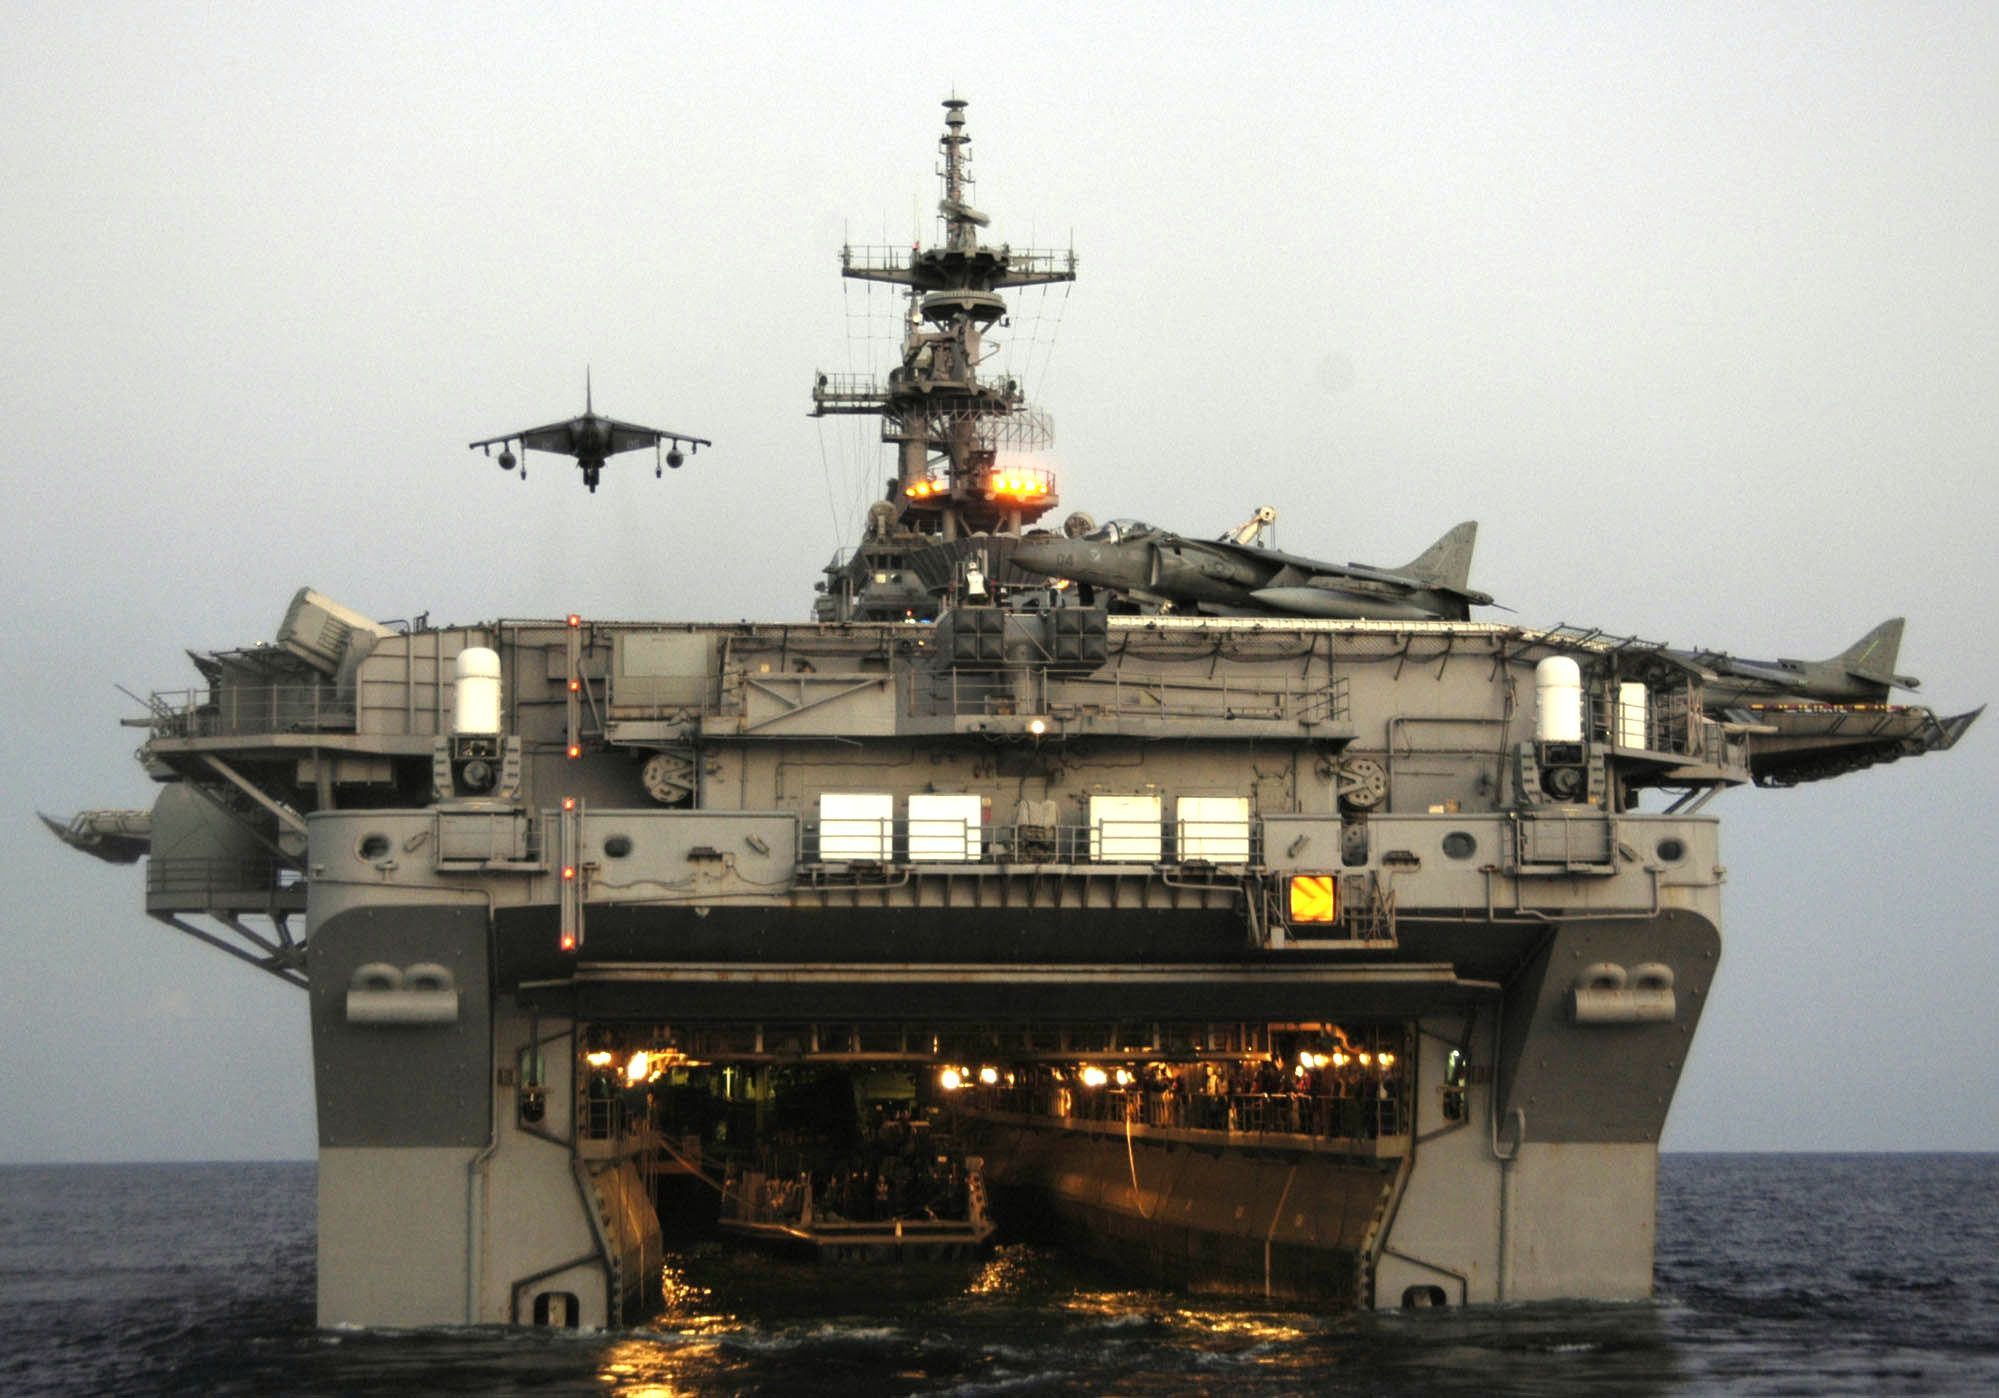 amphibious assault ship, Attack from land, sea & air    Does